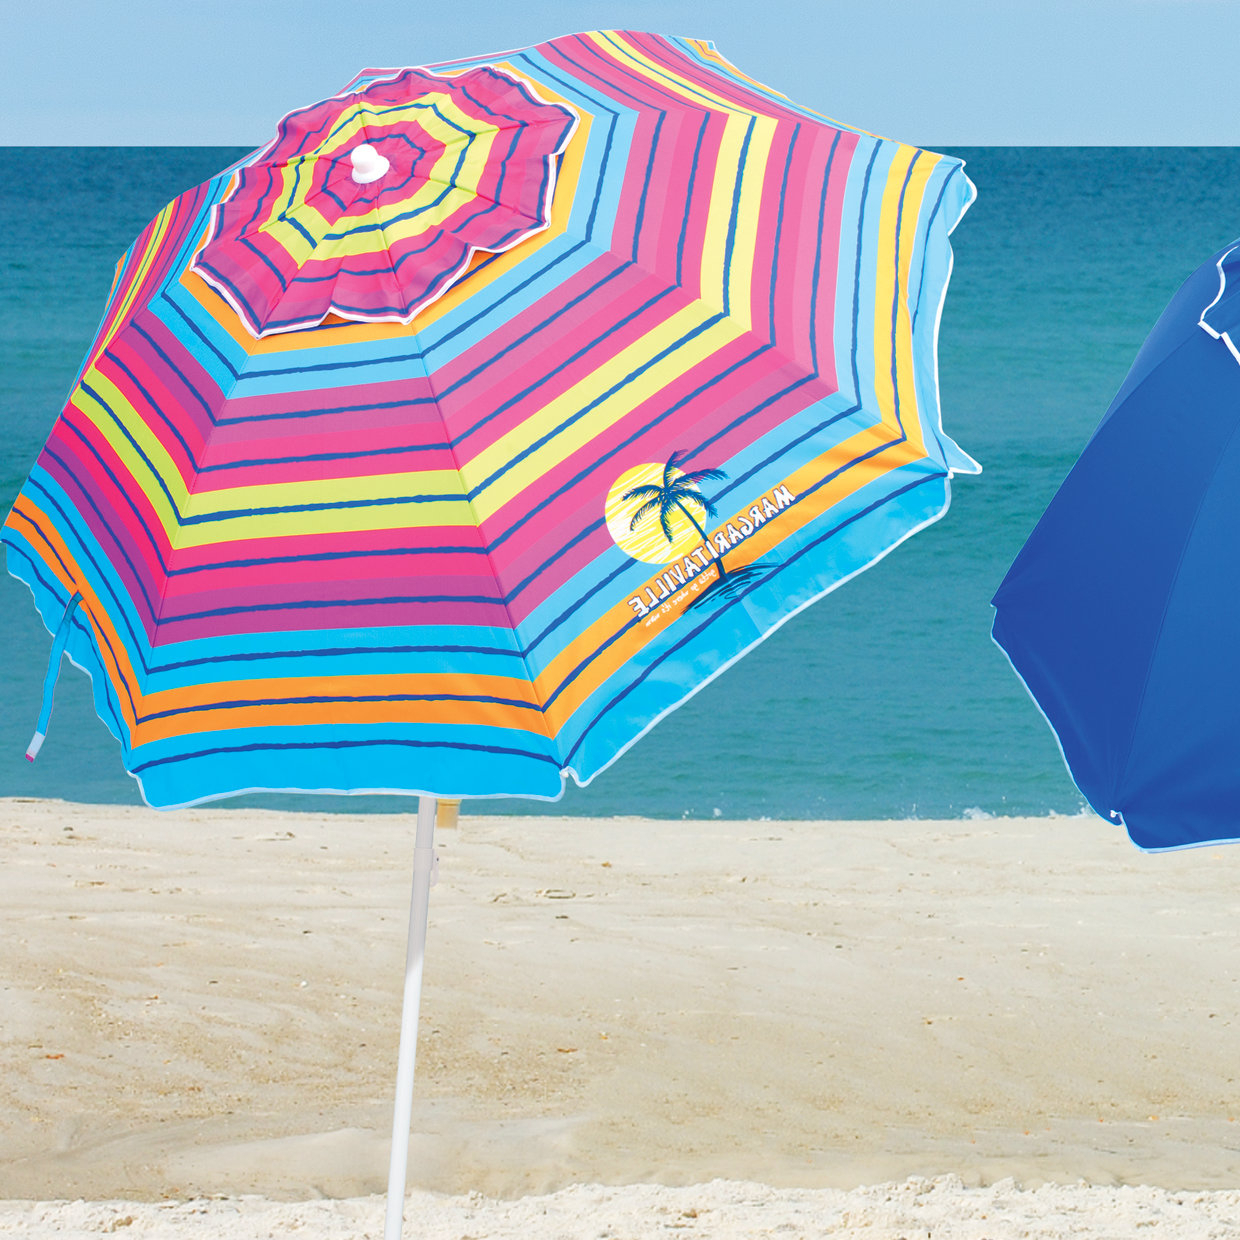 6.5' Beach Umbrella Within Most Popular Margaritaville Green And Blue Striped Beach With Built In Sand Anchor Umbrellas (Gallery 2 of 20)